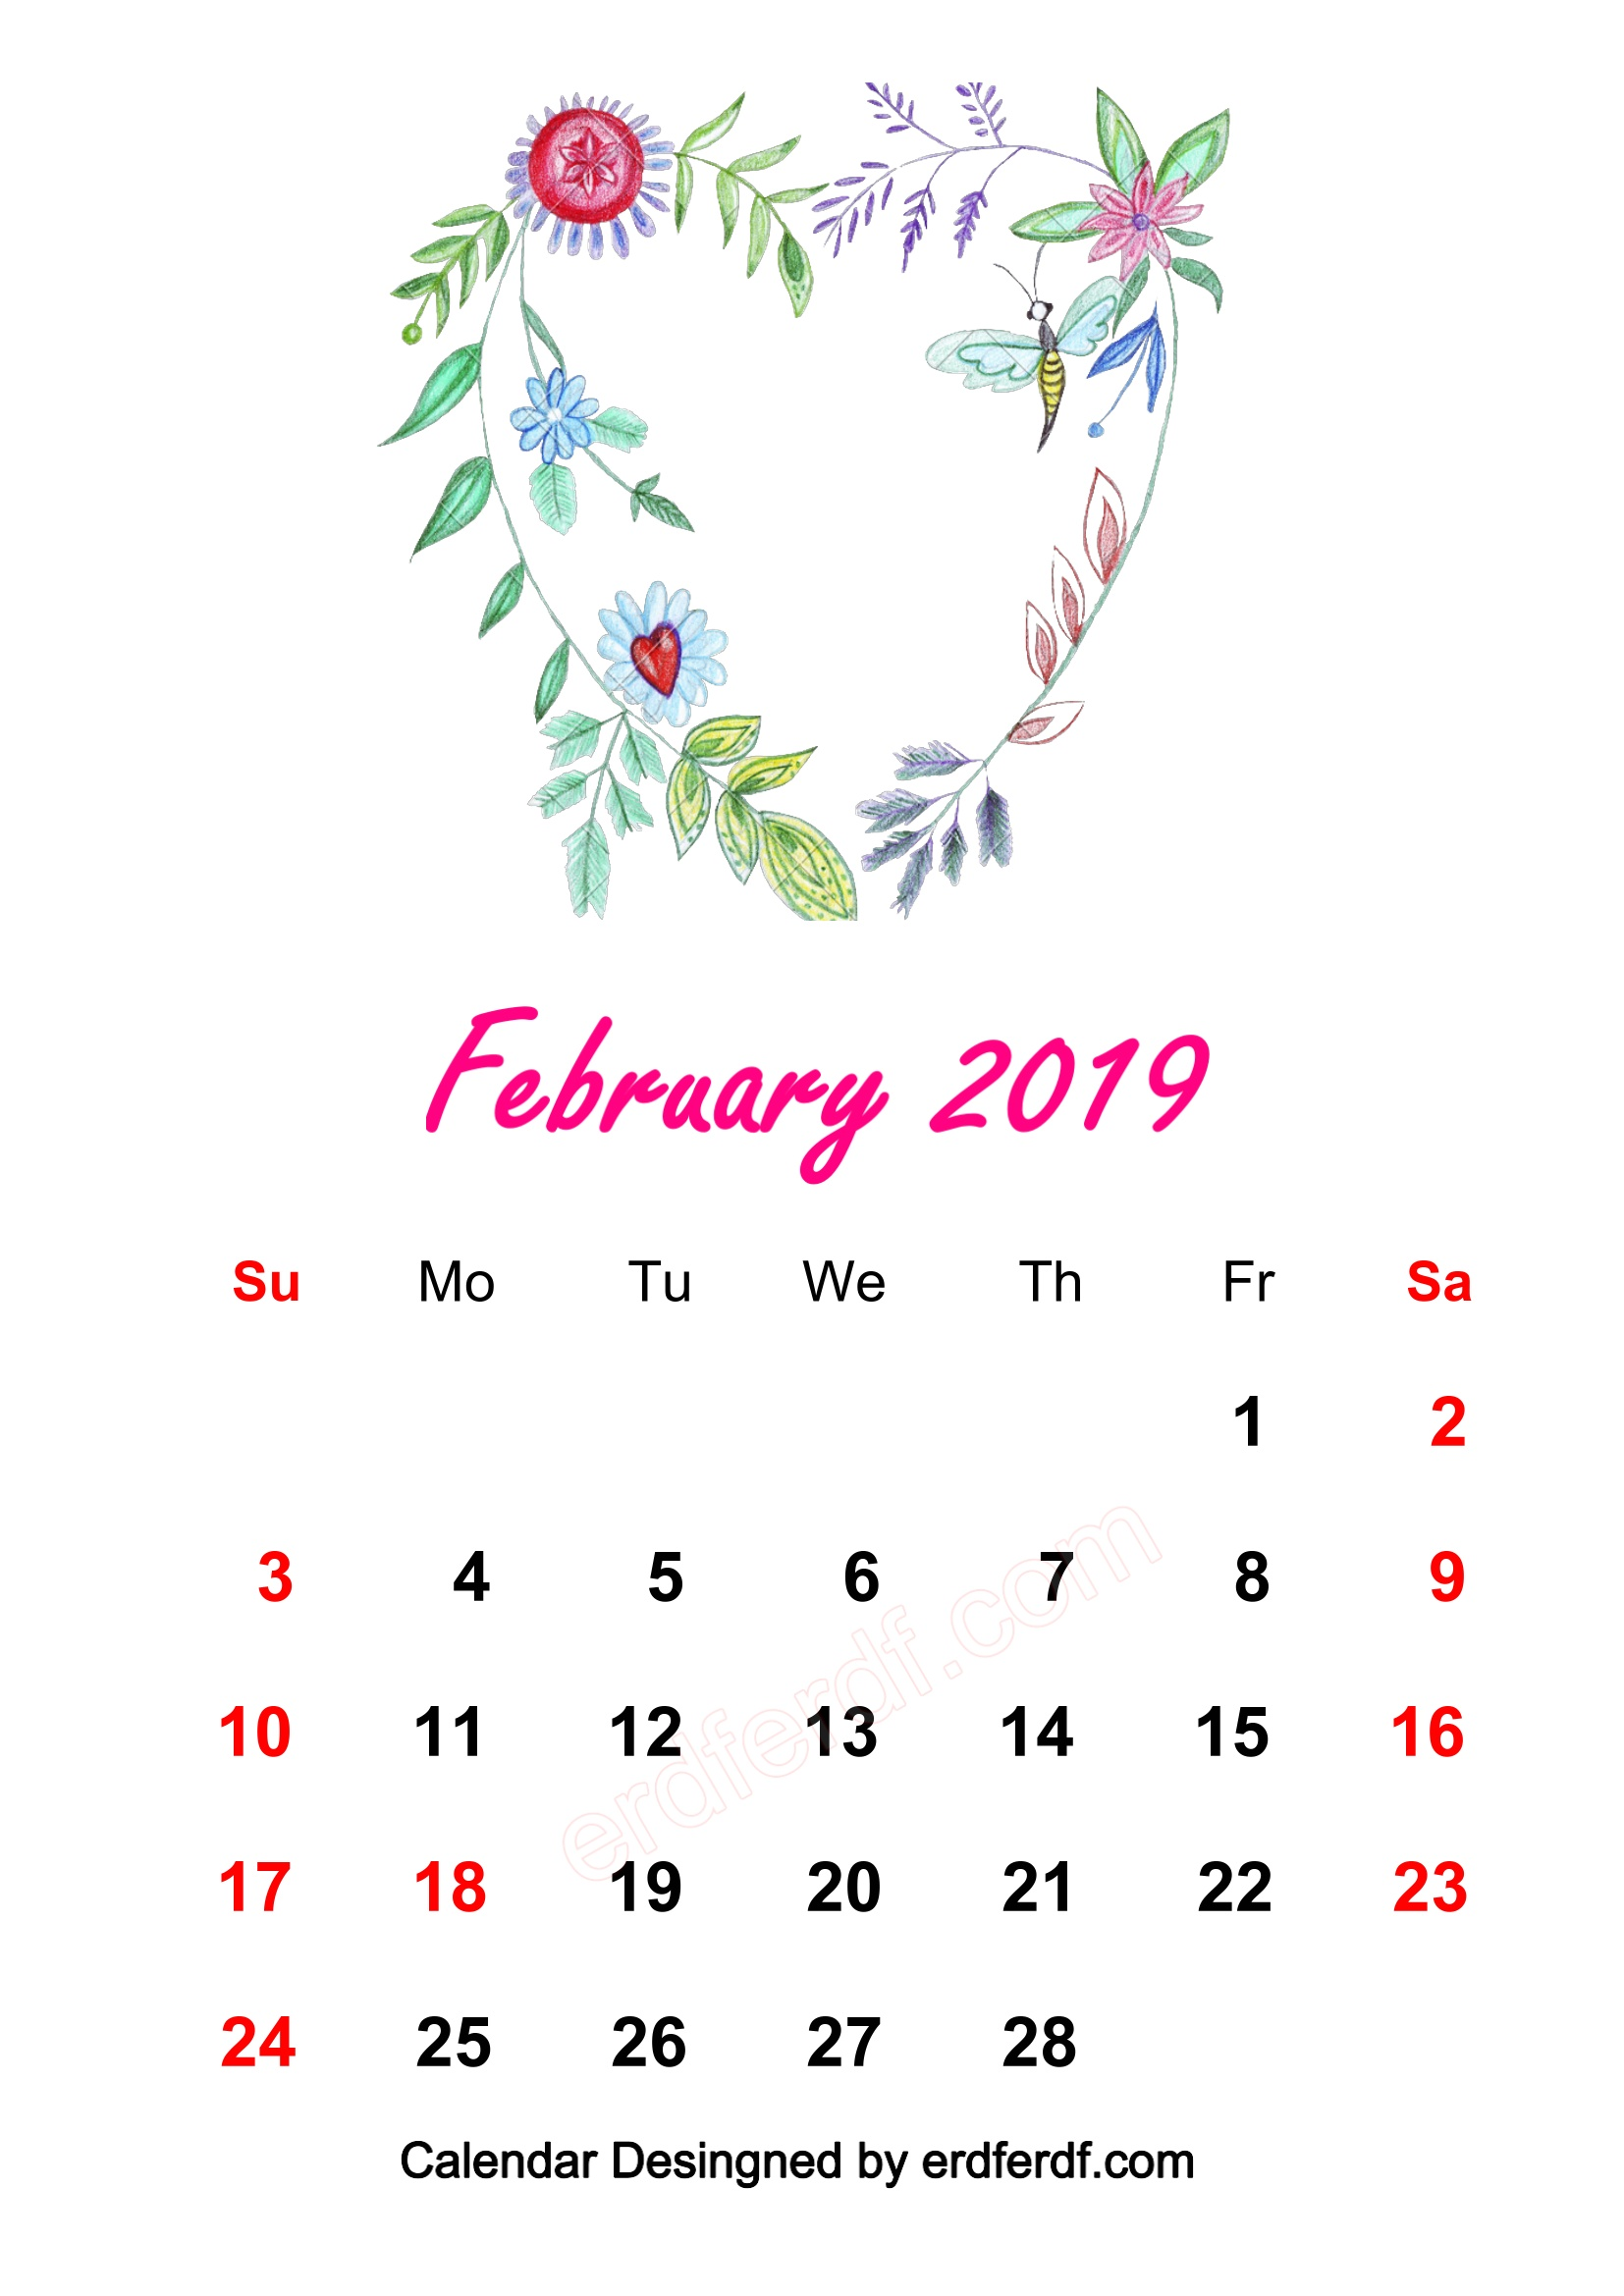 8 Love February 2019 HD Calendar Wallpapers